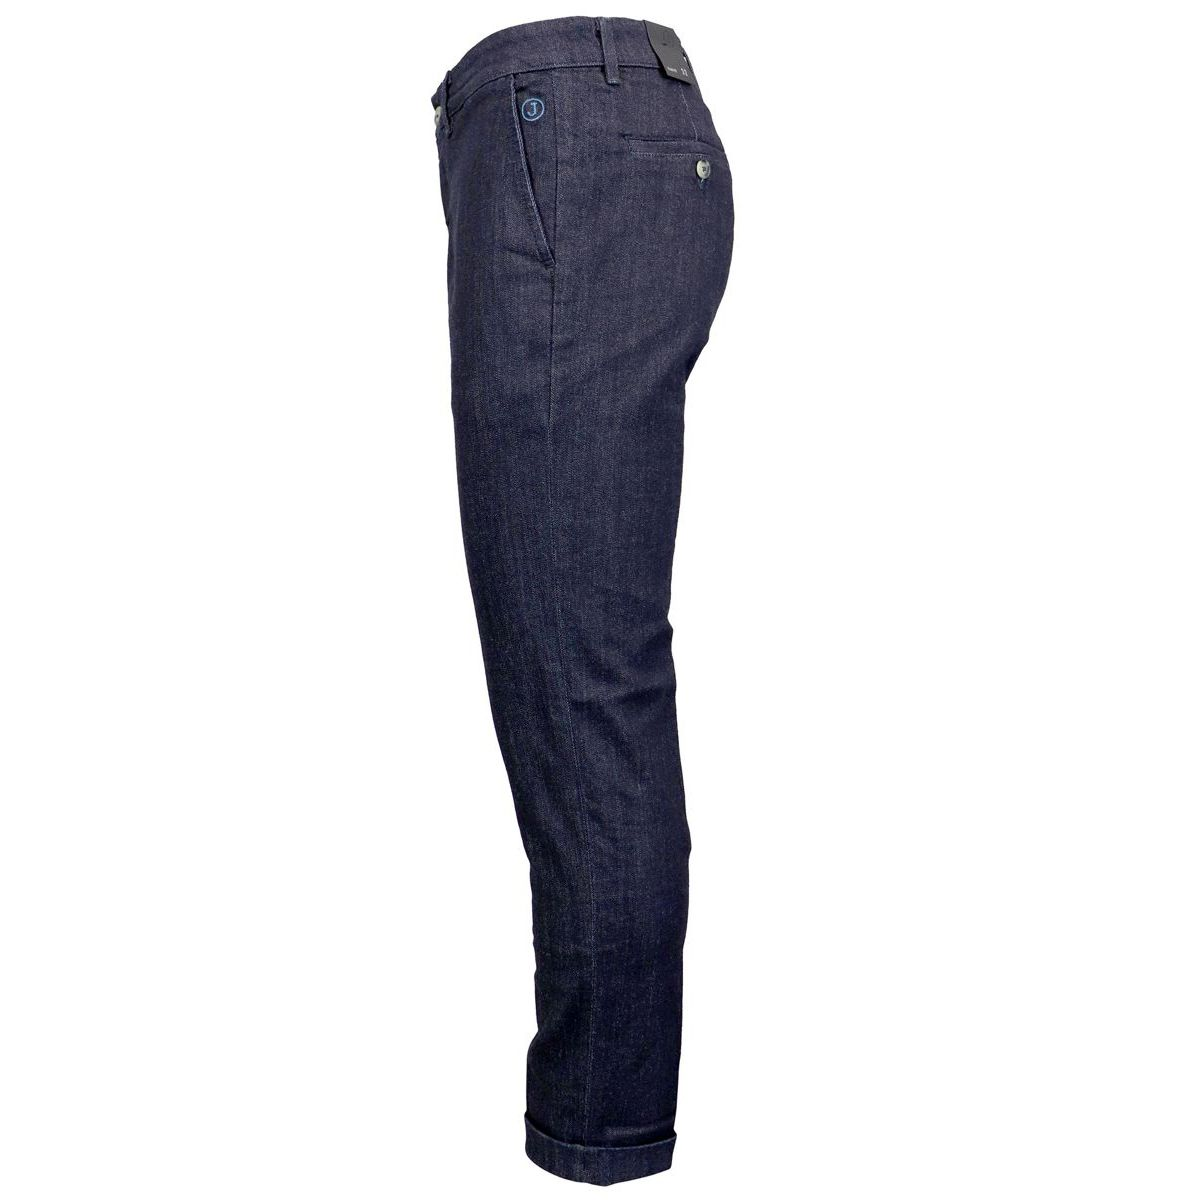 Stretch cotton jeans with america pockets Dark denim Jeckerson